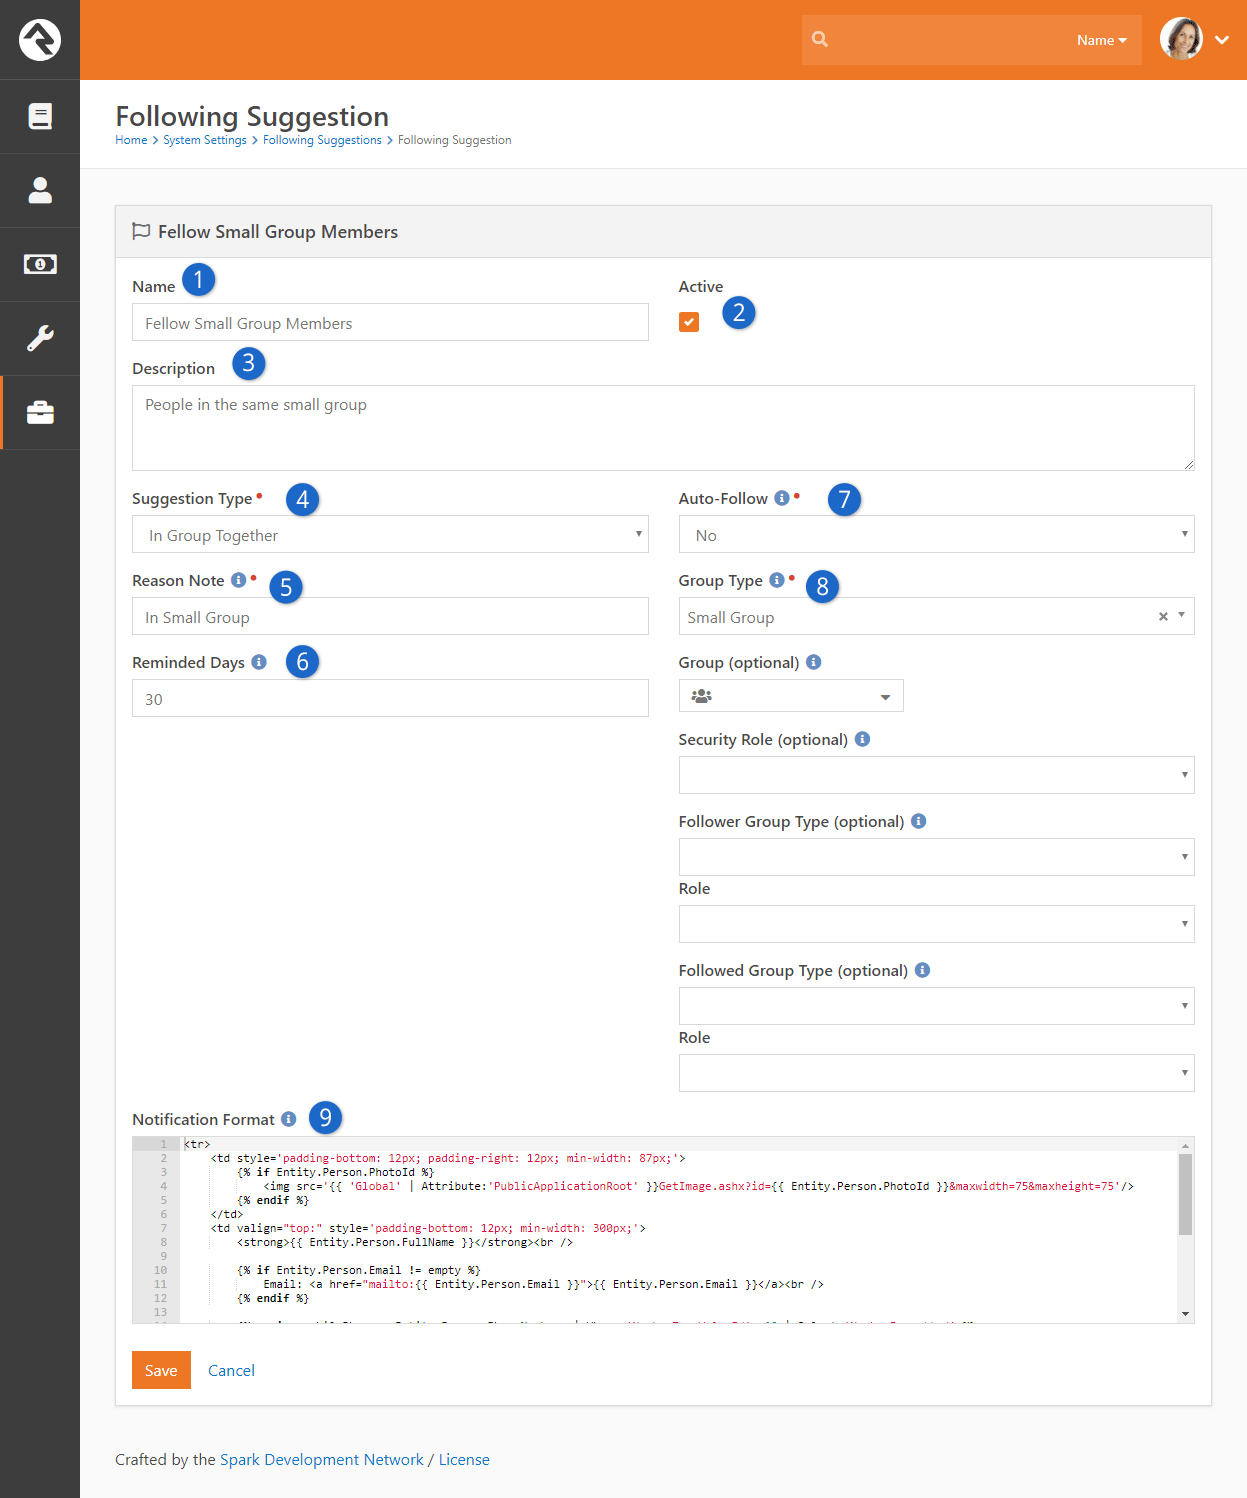 Following Suggestion Configuration